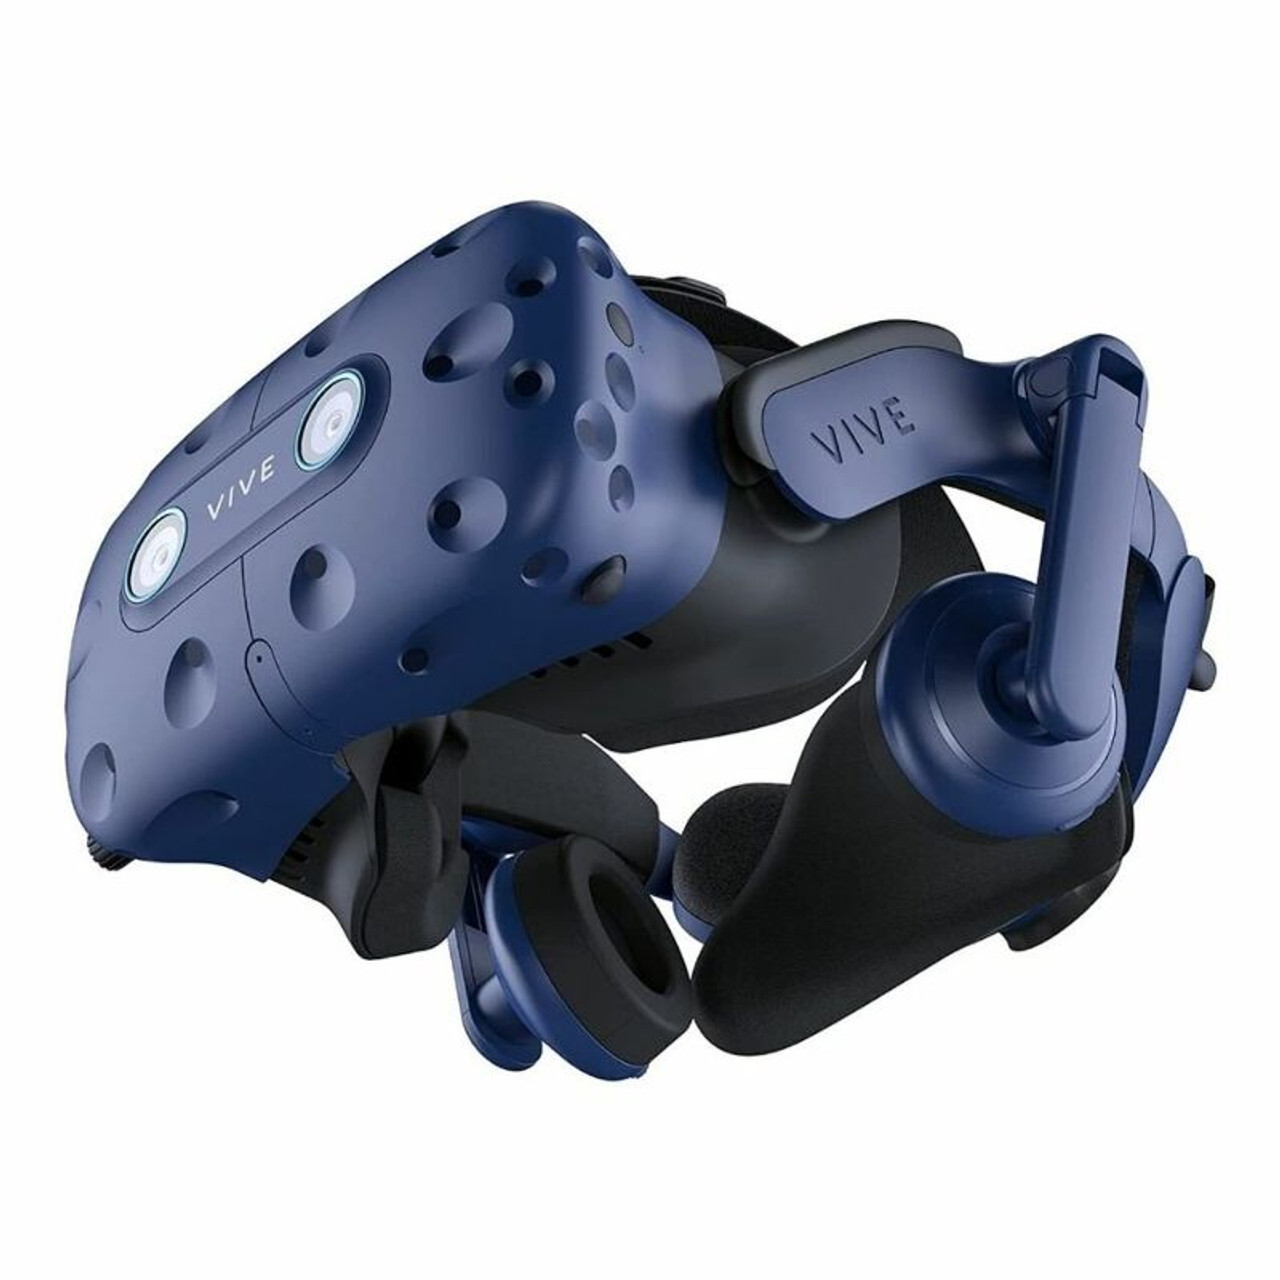 HTC Vive Pro Eye Professional-Grade VR with Eye Tracking